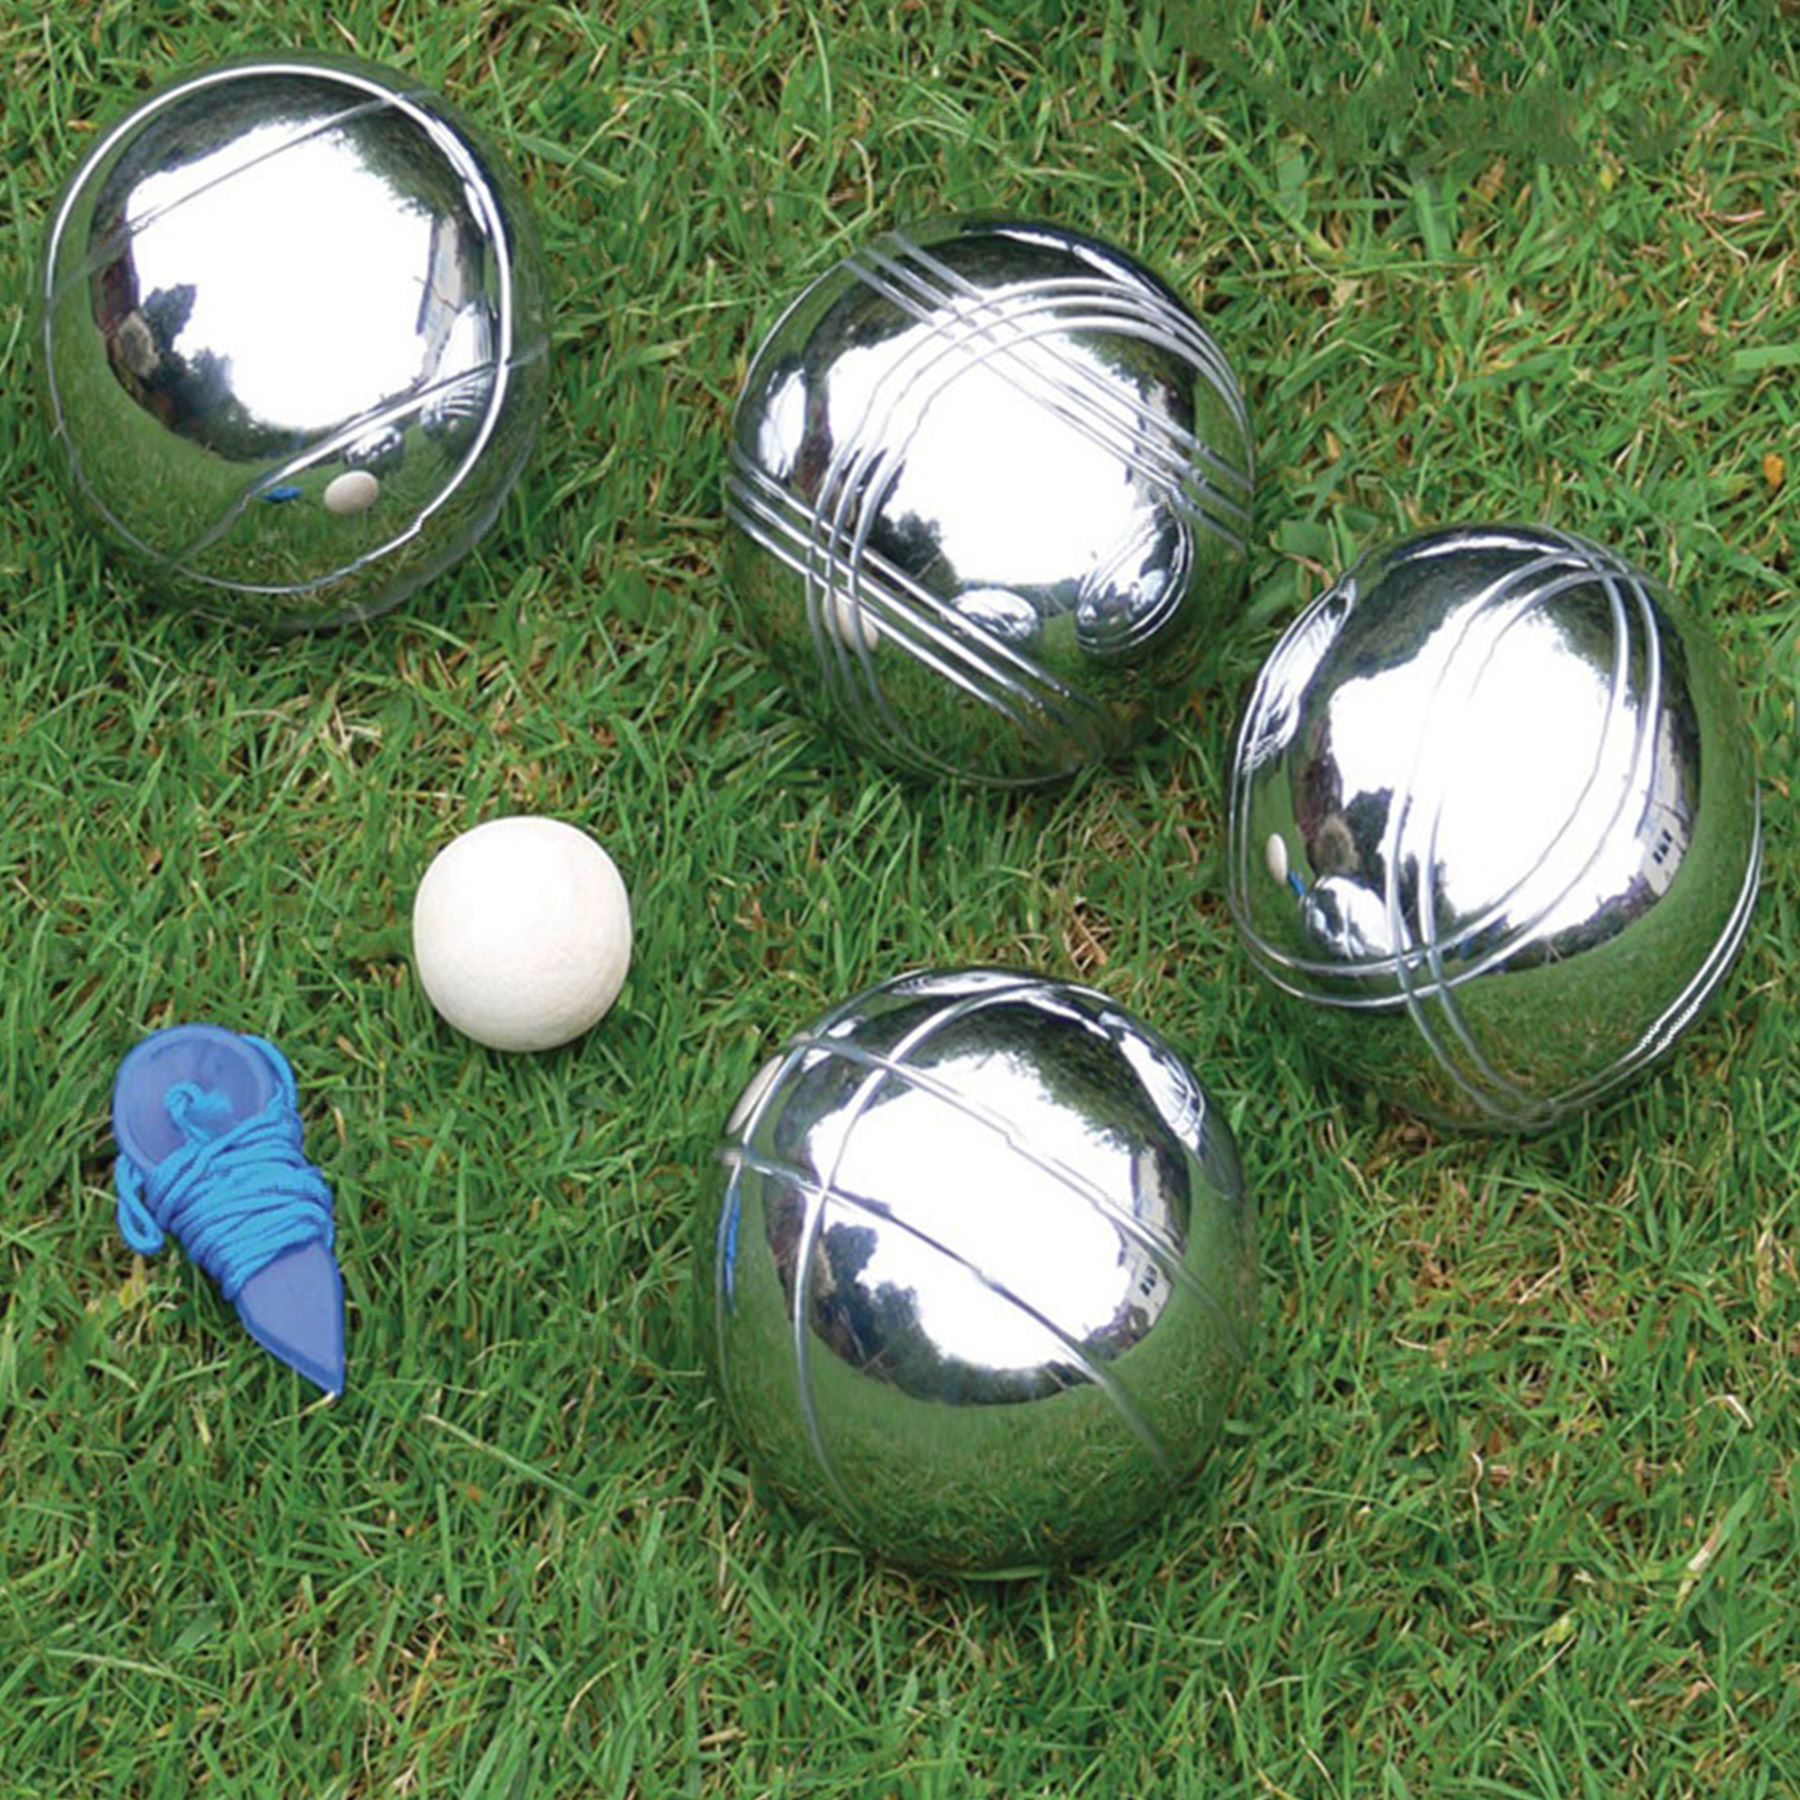 steel french boules 8 petanque metal balls complete garden game set outdoor new ebay. Black Bedroom Furniture Sets. Home Design Ideas